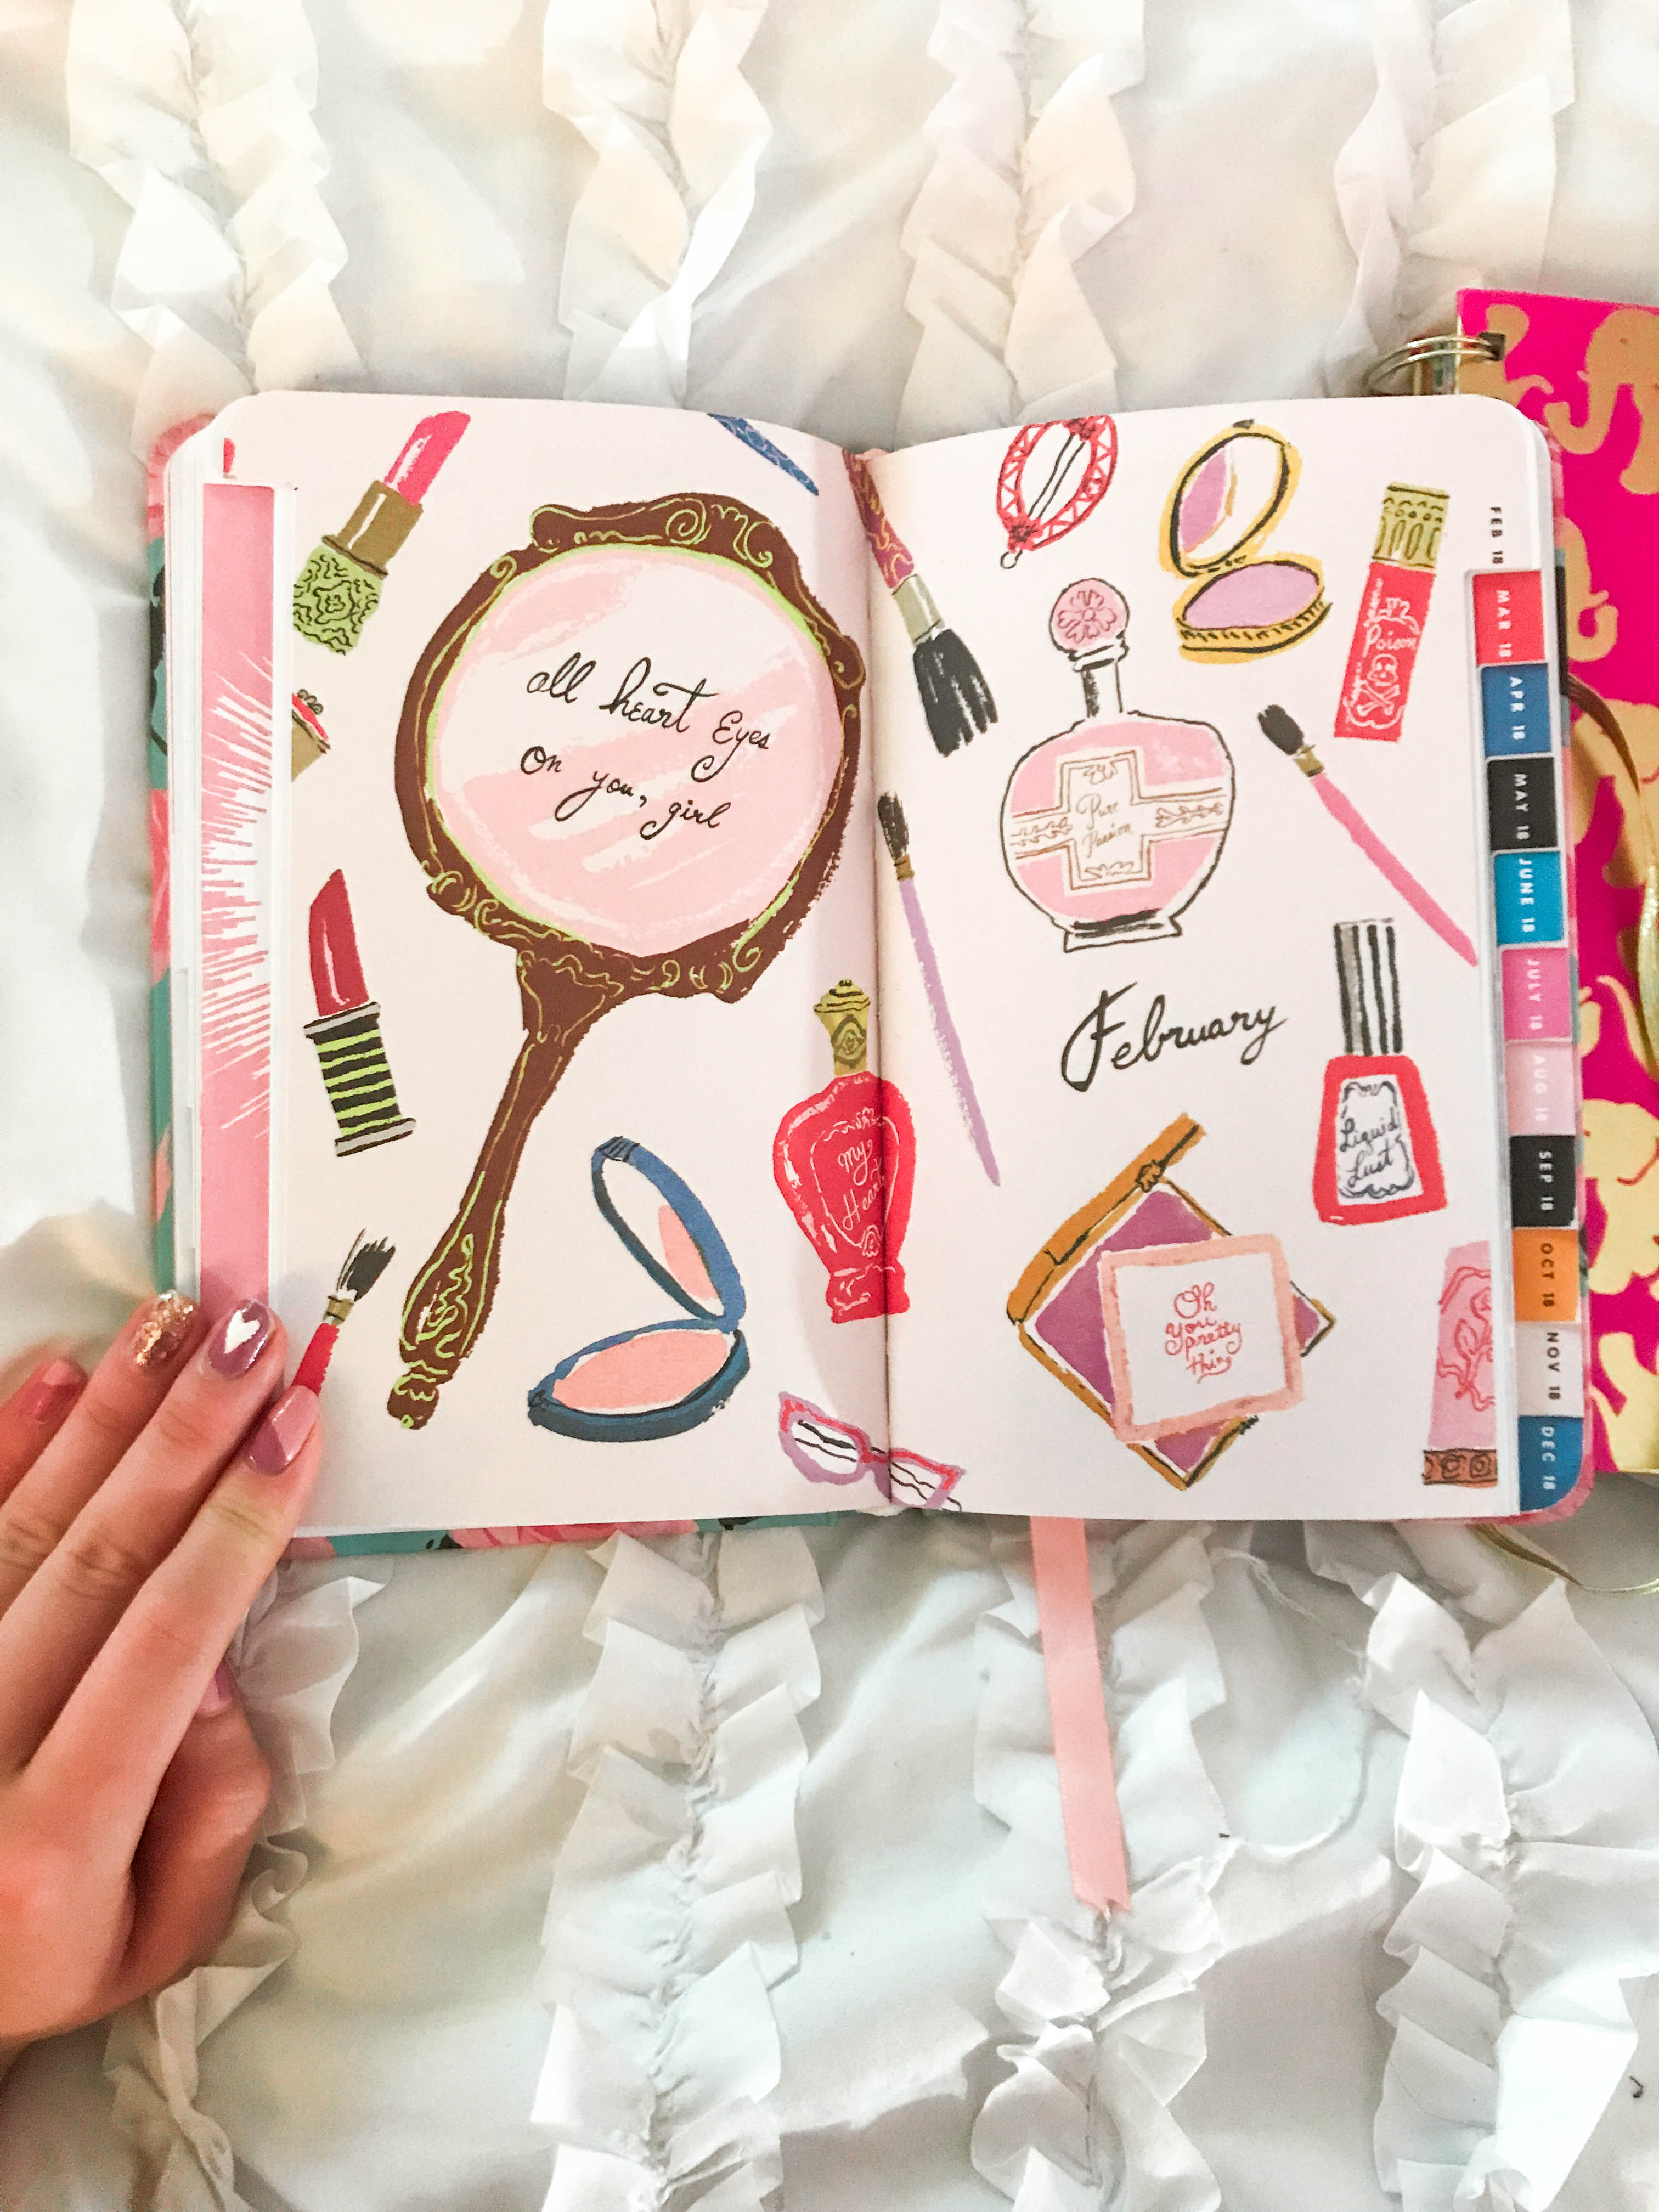 shop ban.do bando monthly month title page art mirror beauty compact lipstick mascara perfume hand in photo with heart manicure on white ruffle comforter